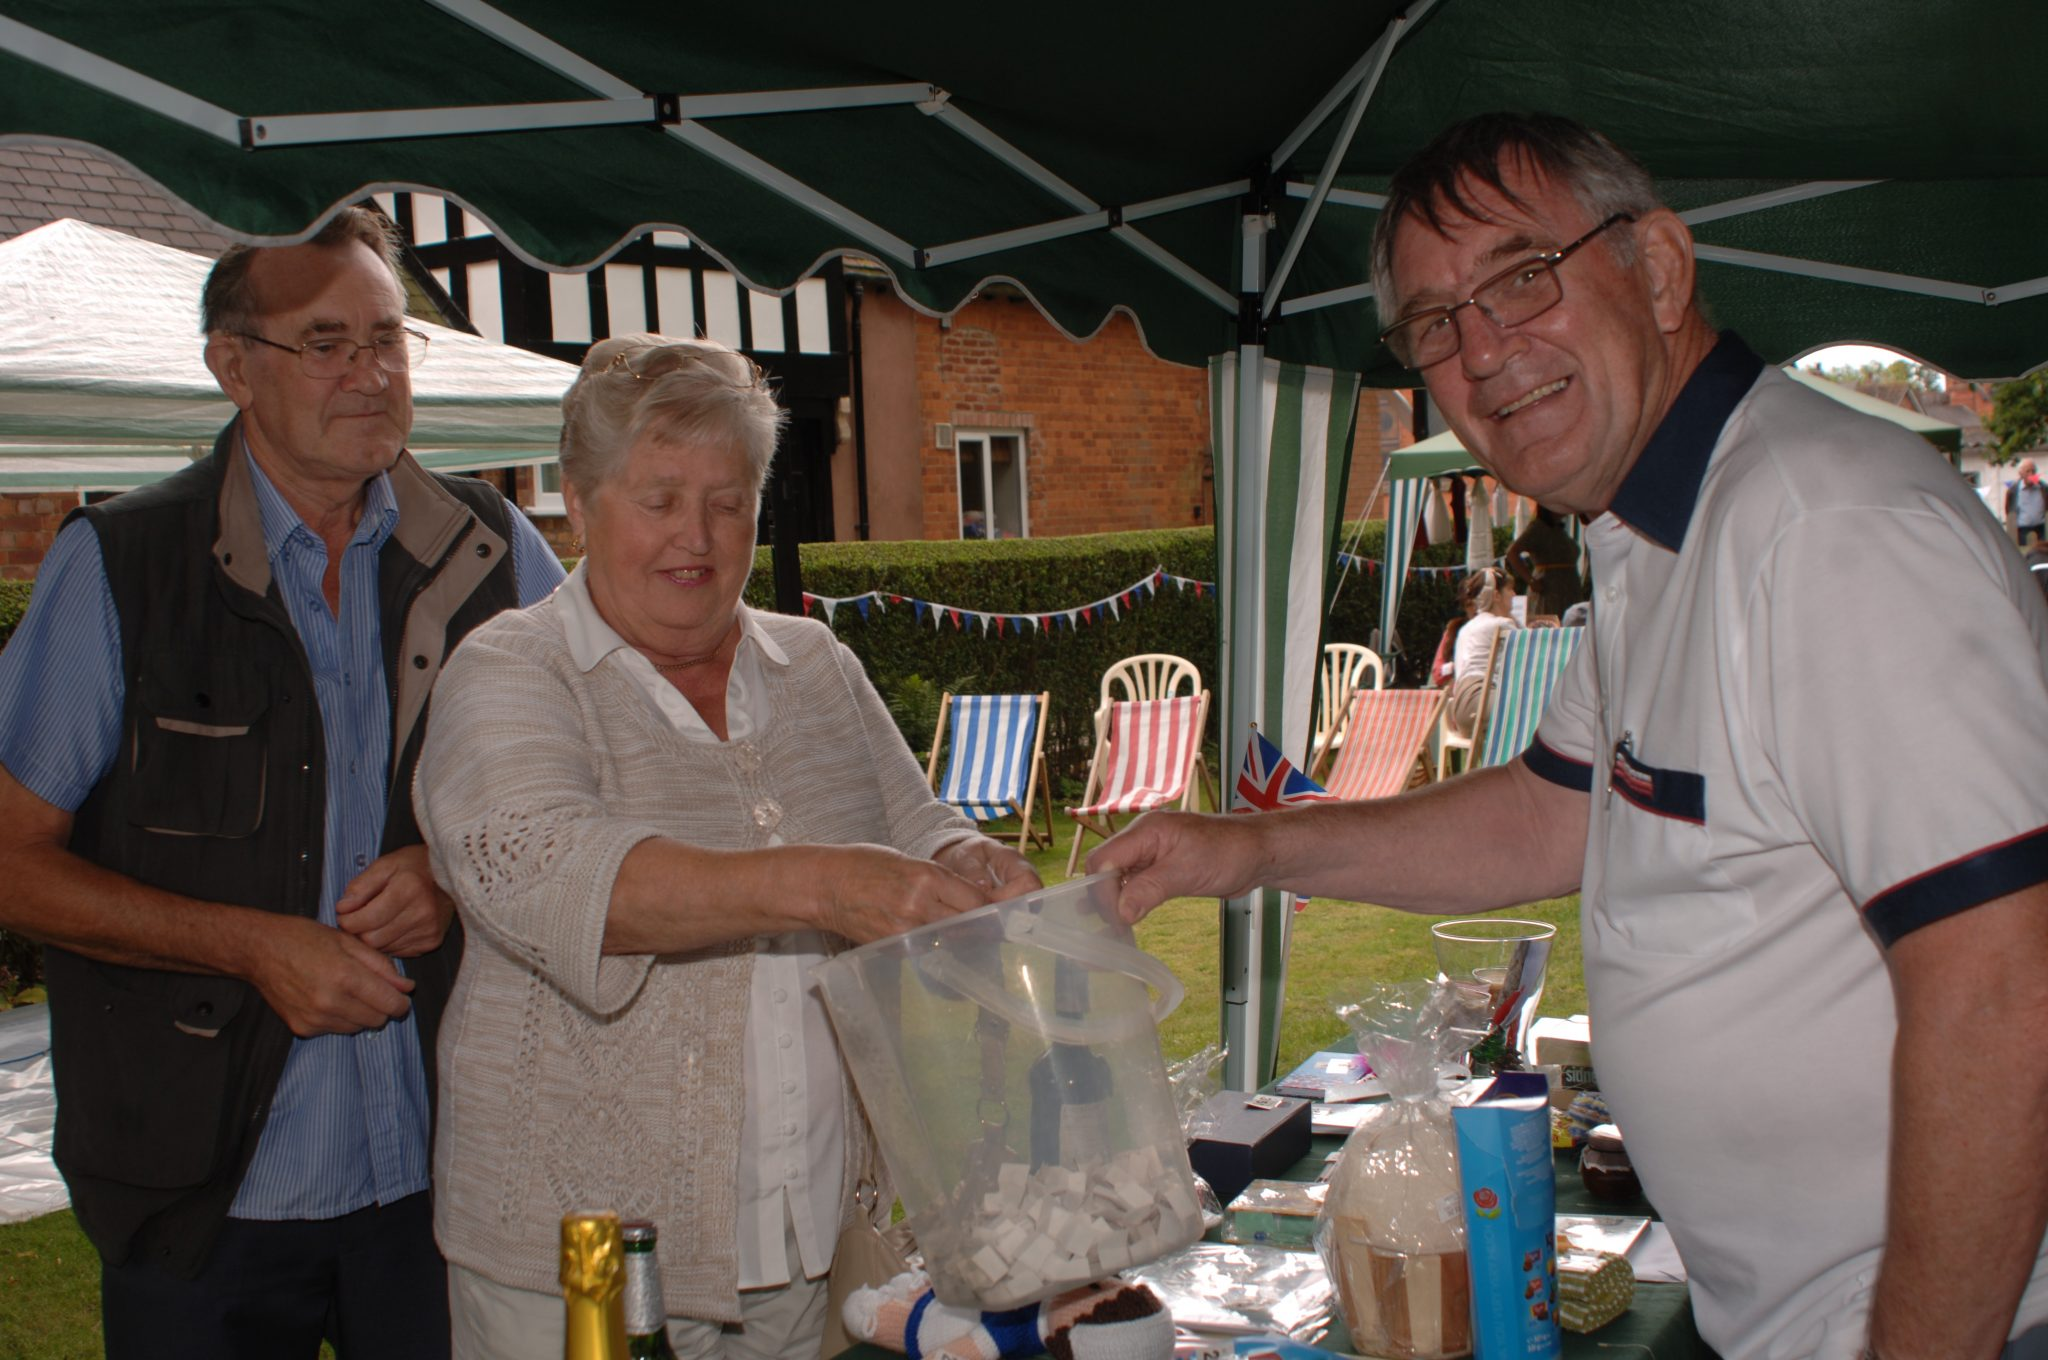 Roger selling Tombola tickets